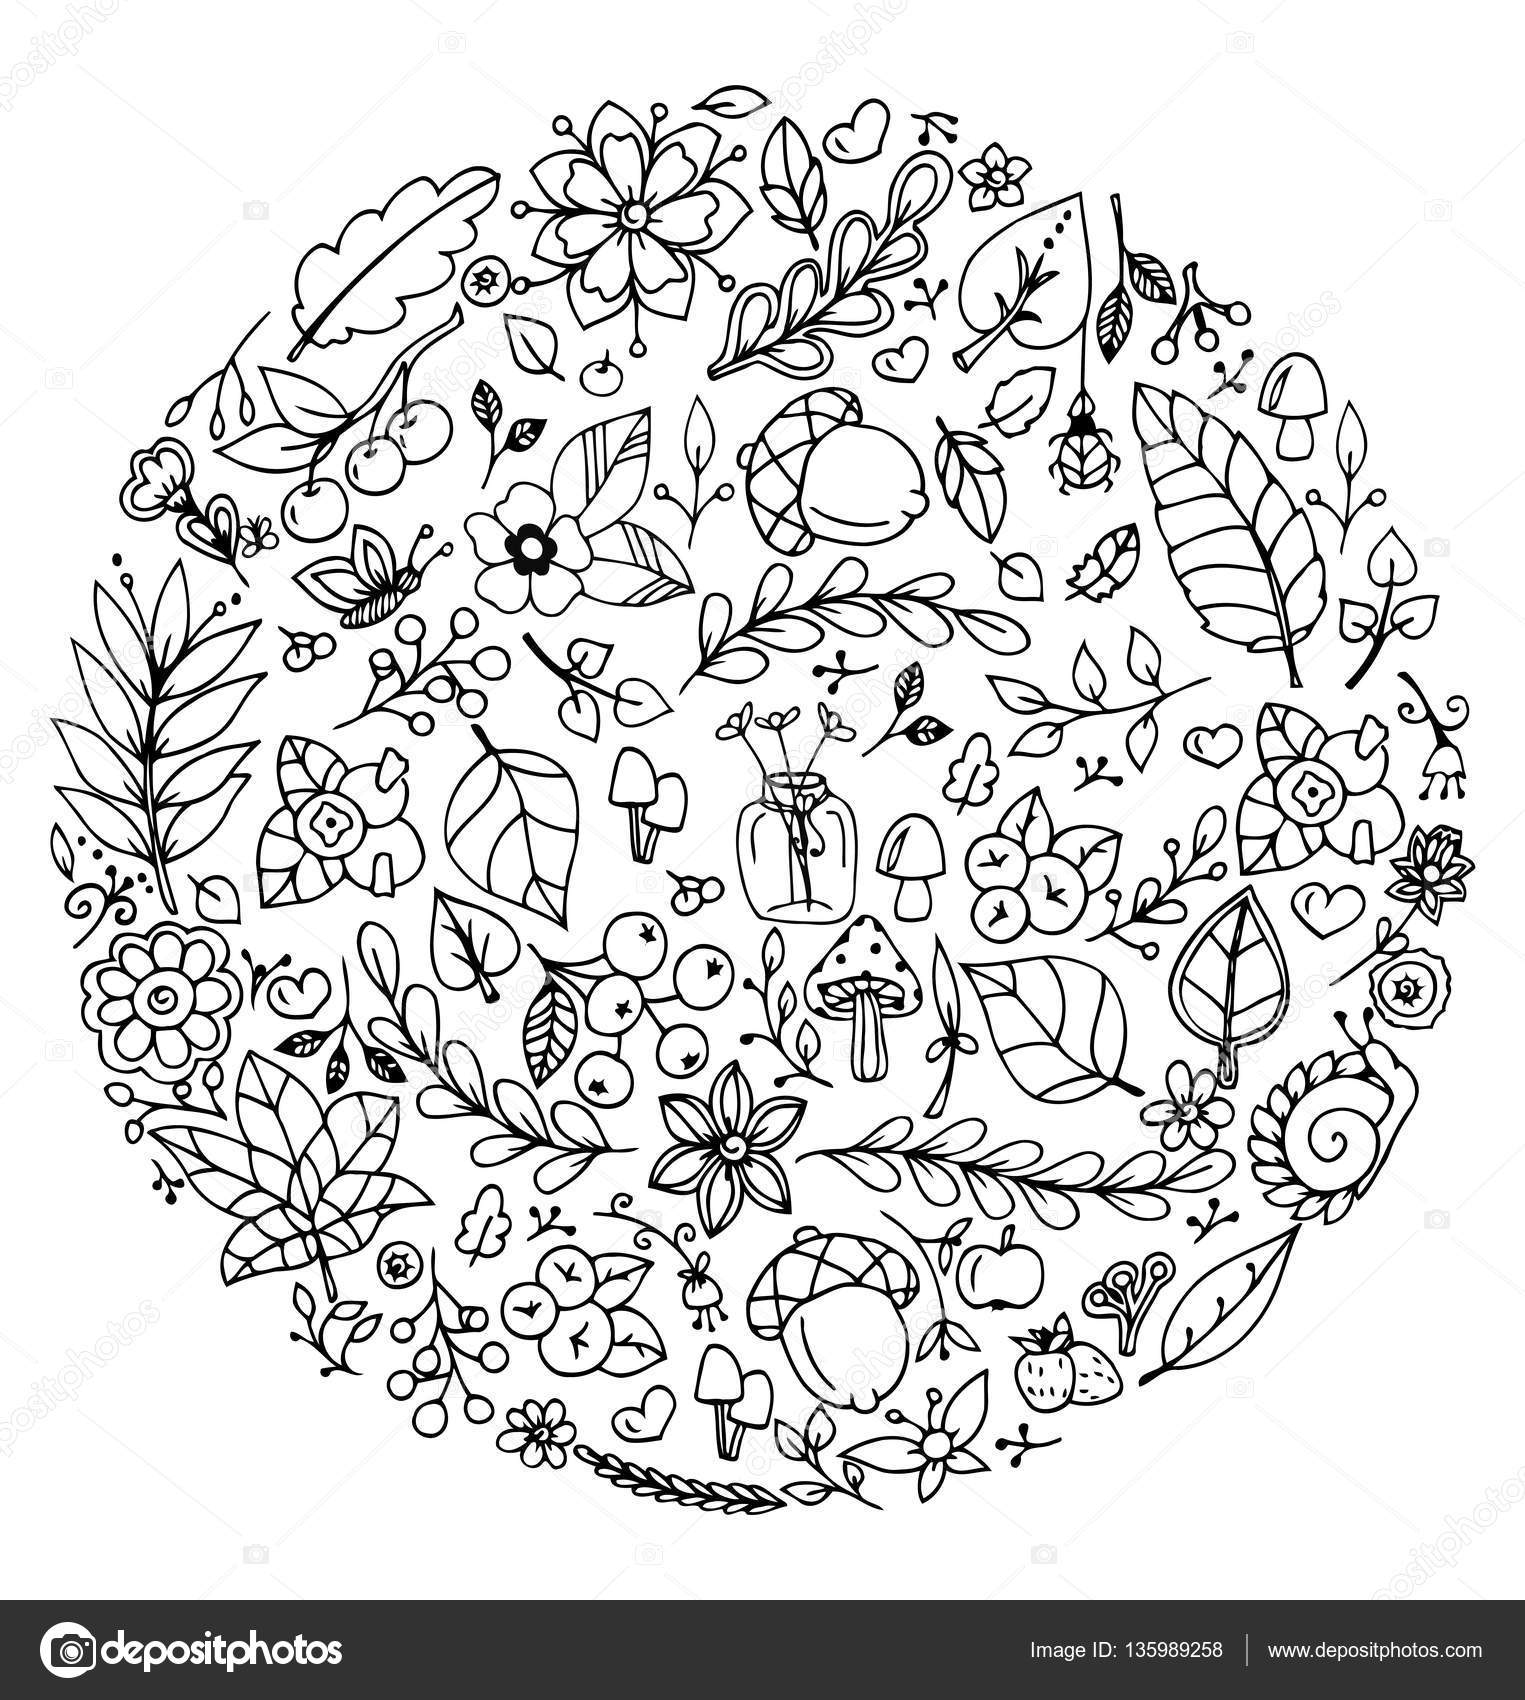 Coloriage Anti Stress Automne.Vector Illustration Zen Tangle Automne Jeu De Cercle